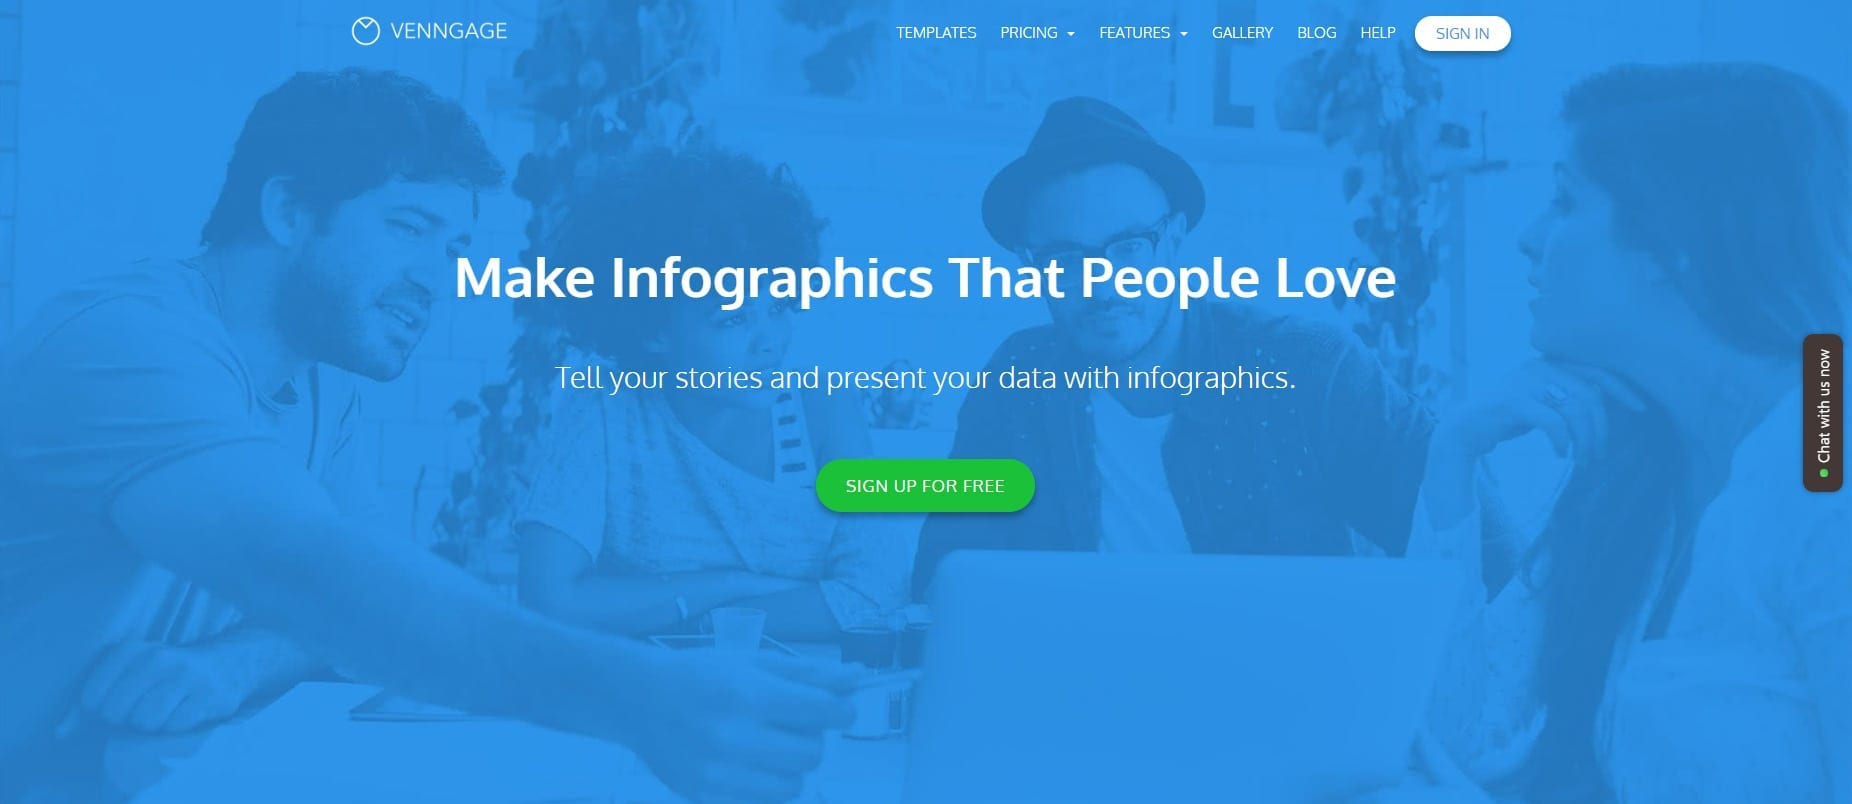 Vennage - Make infographics that people love